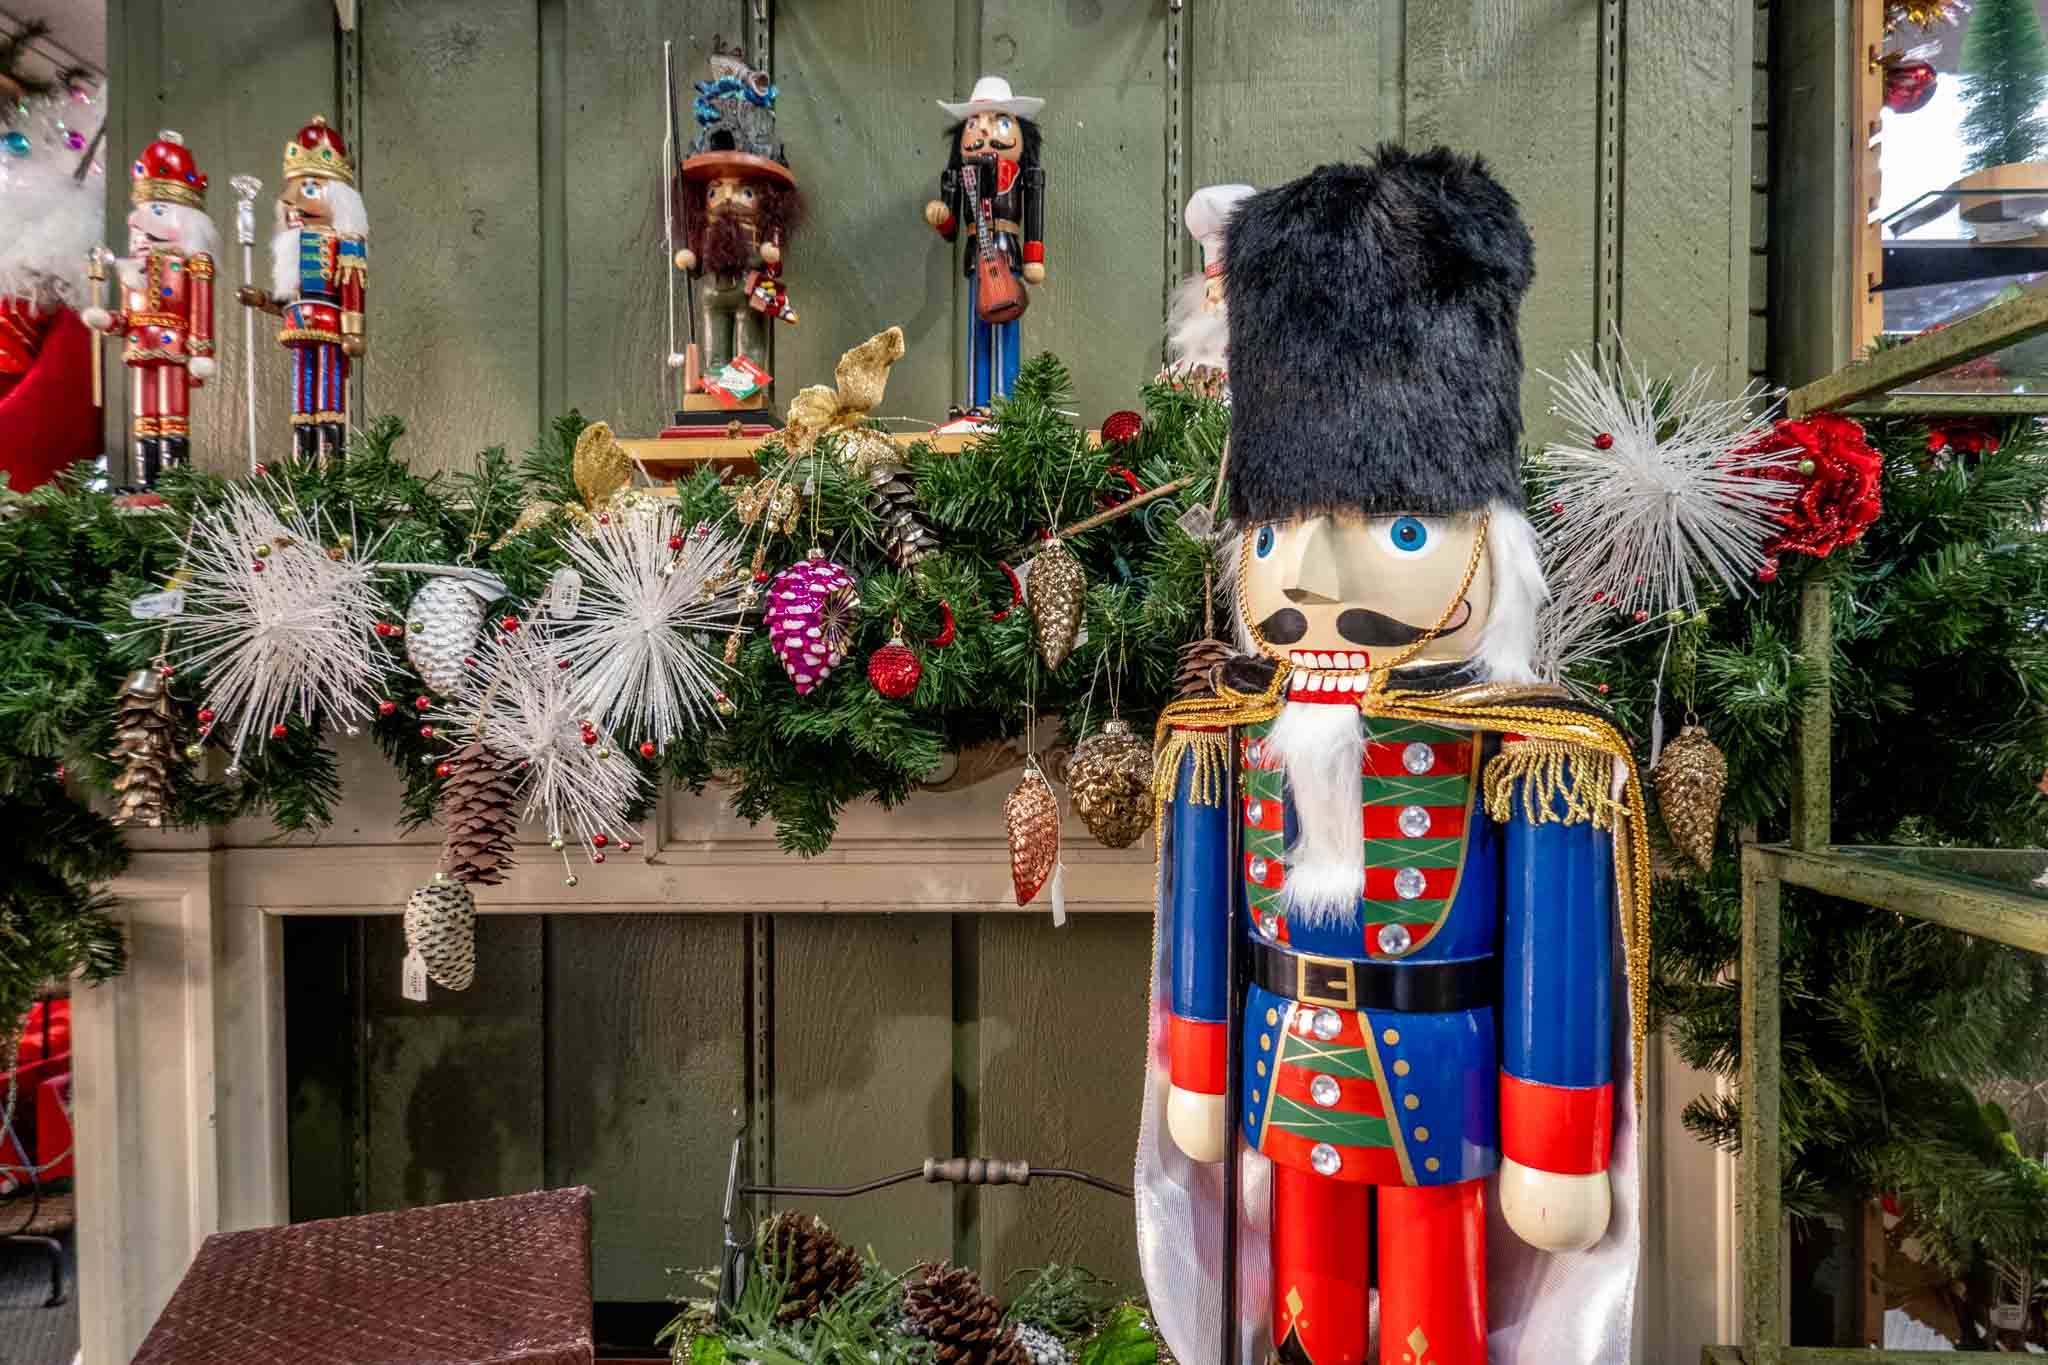 3-foot-tall Nutcracker in front of a mantel lined with small Nutcrackers